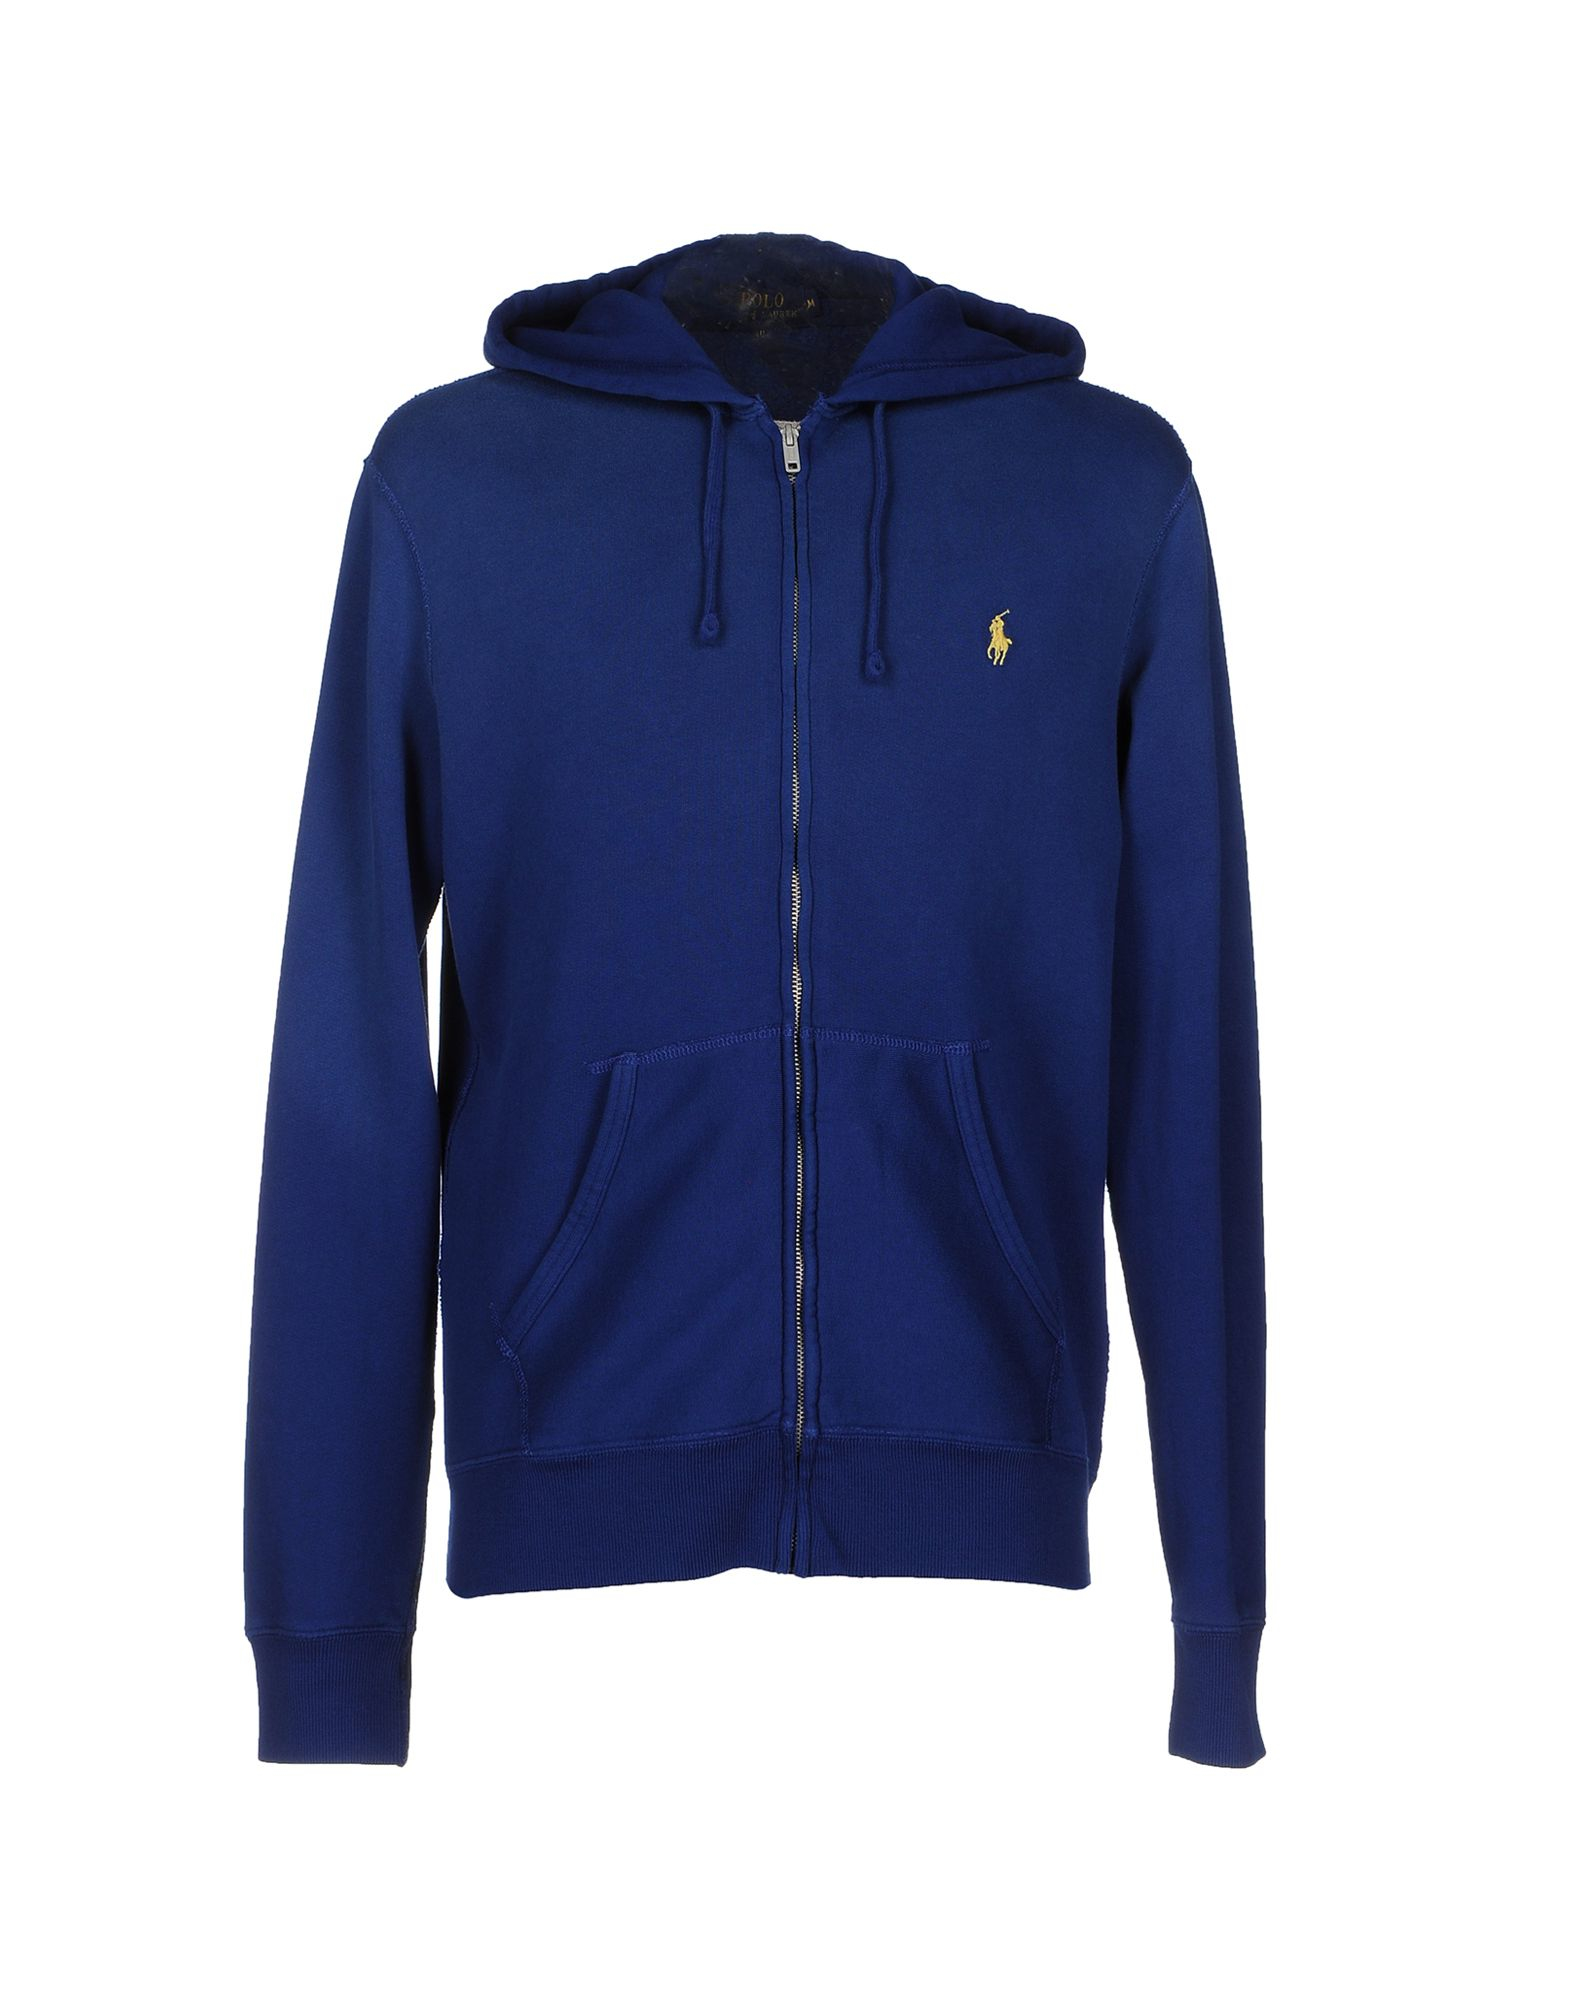 polo ralph lauren sweatshirt in blue for men dark blue. Black Bedroom Furniture Sets. Home Design Ideas